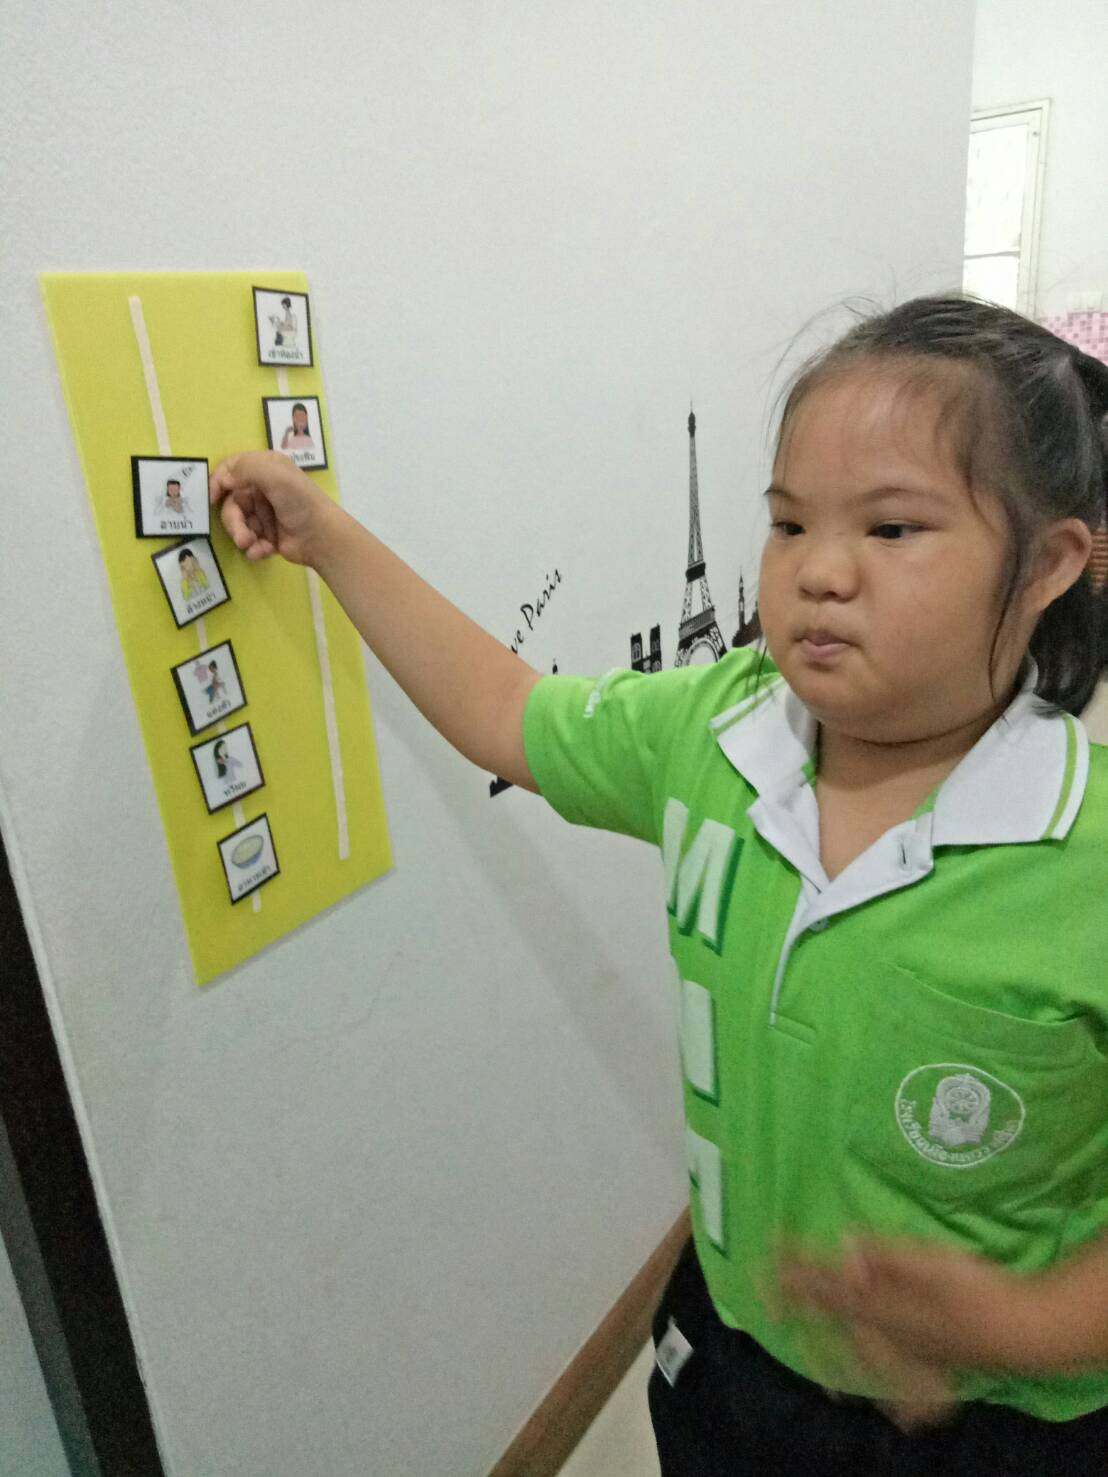 Using the picture schedule to complete daily living skills independently.